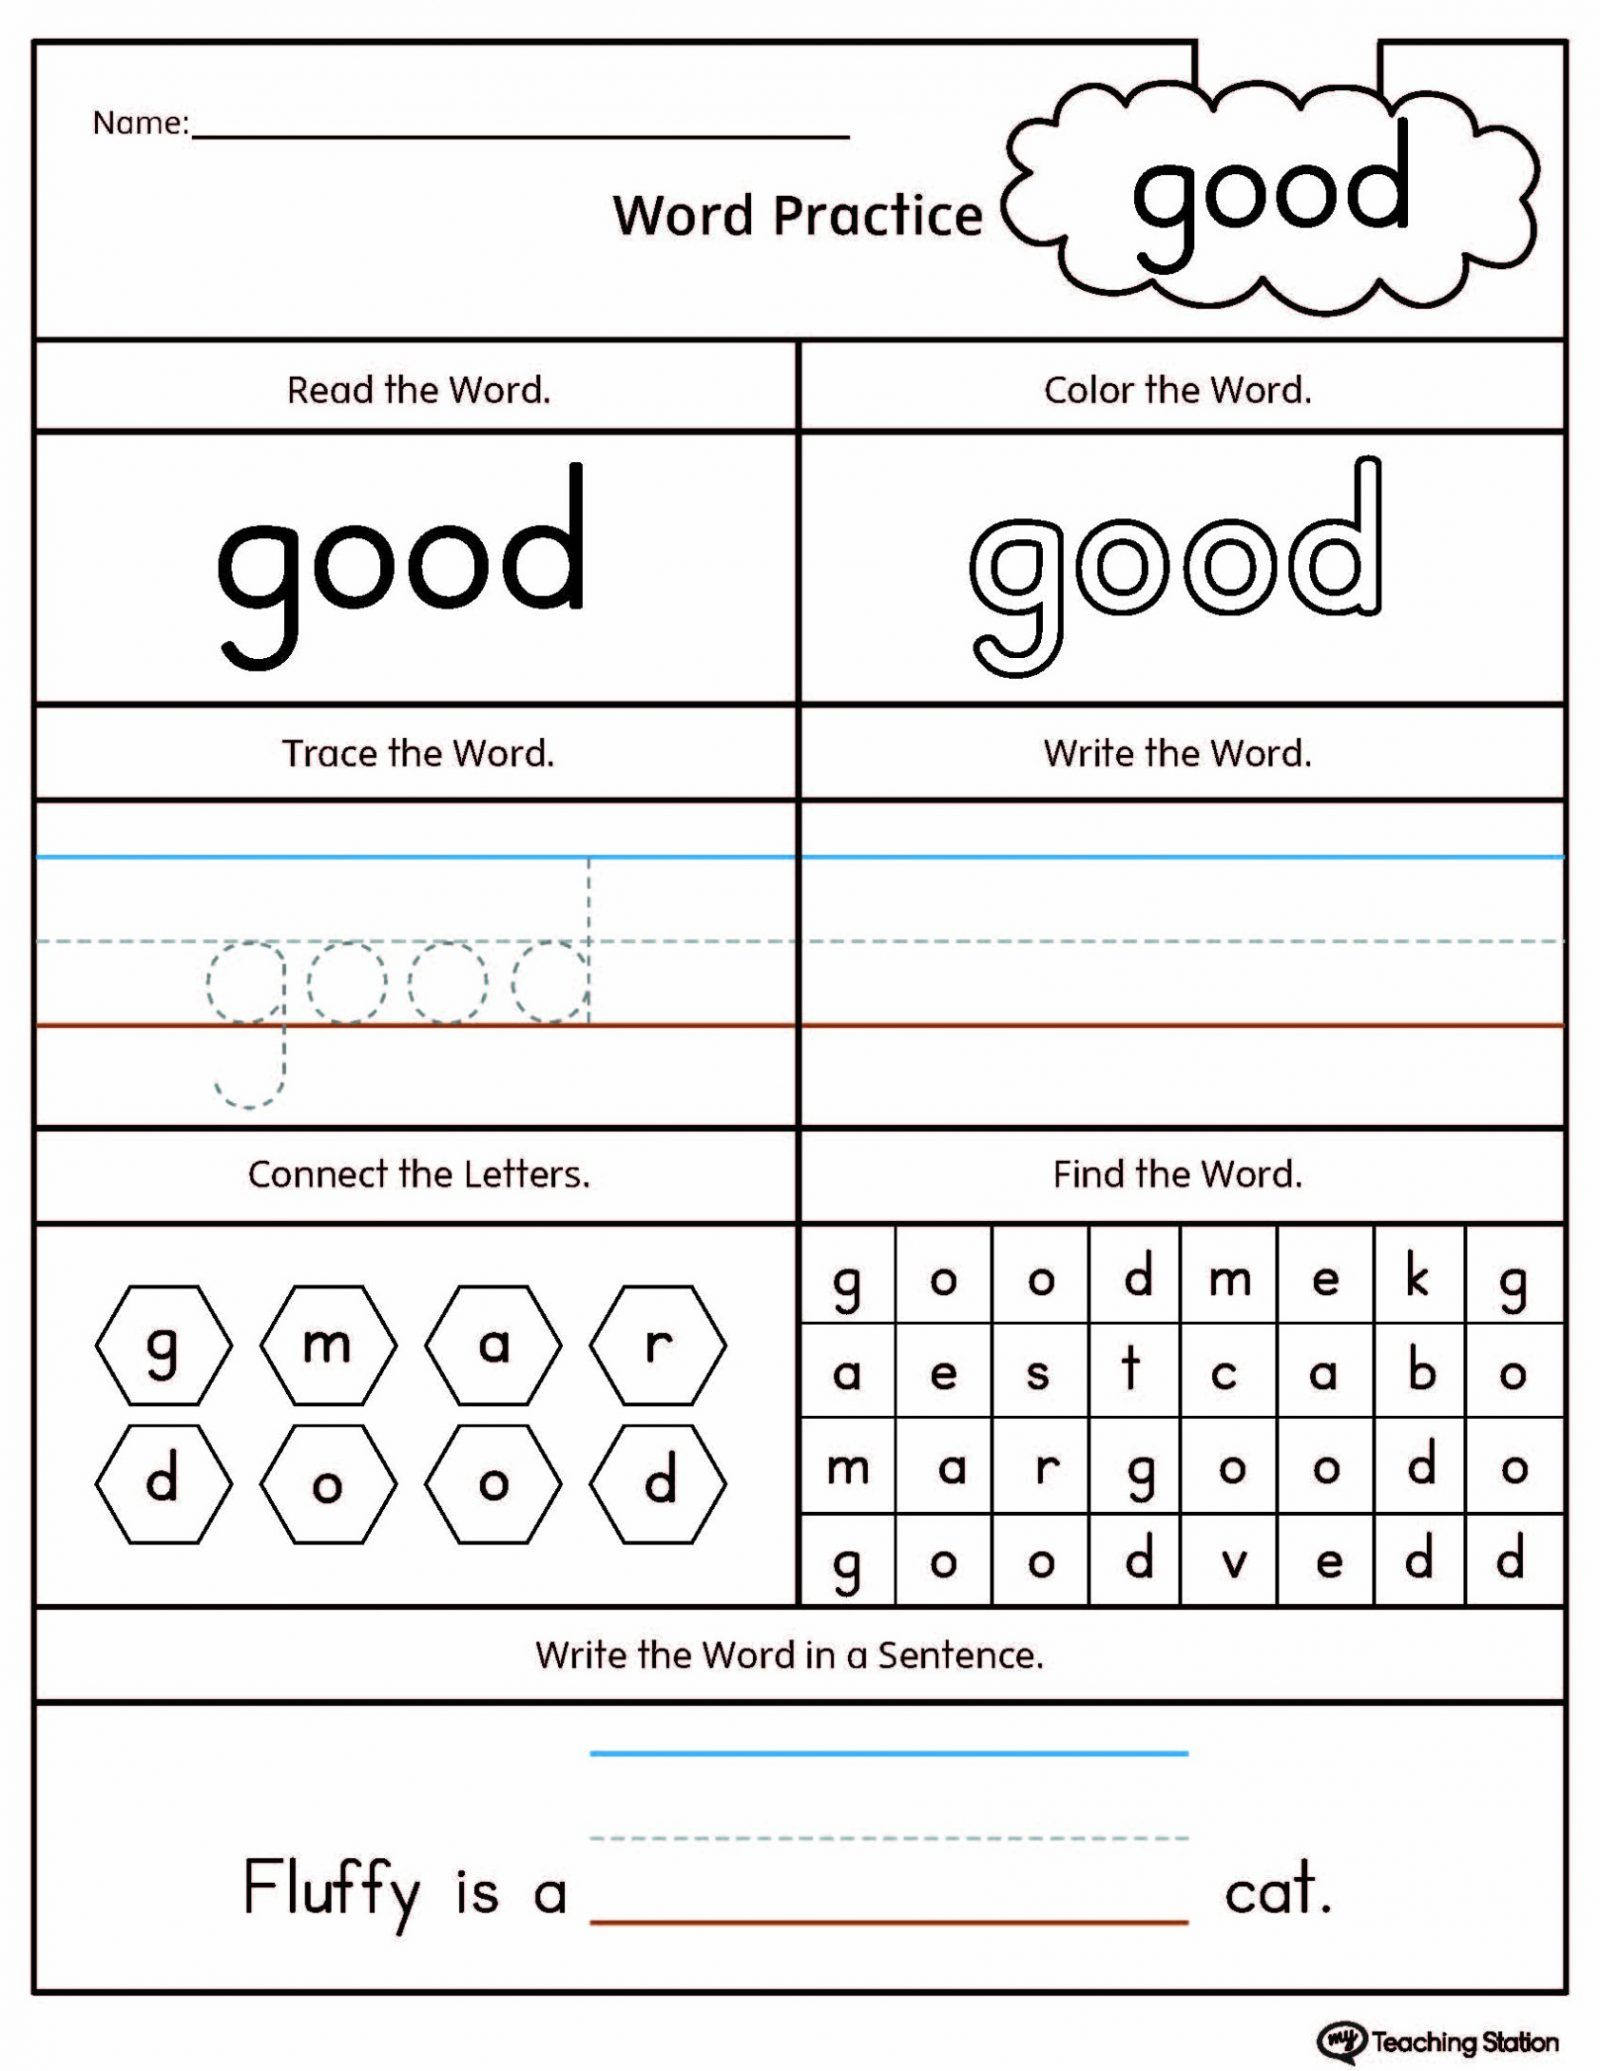 Saxon Math Grade 1 Worksheets